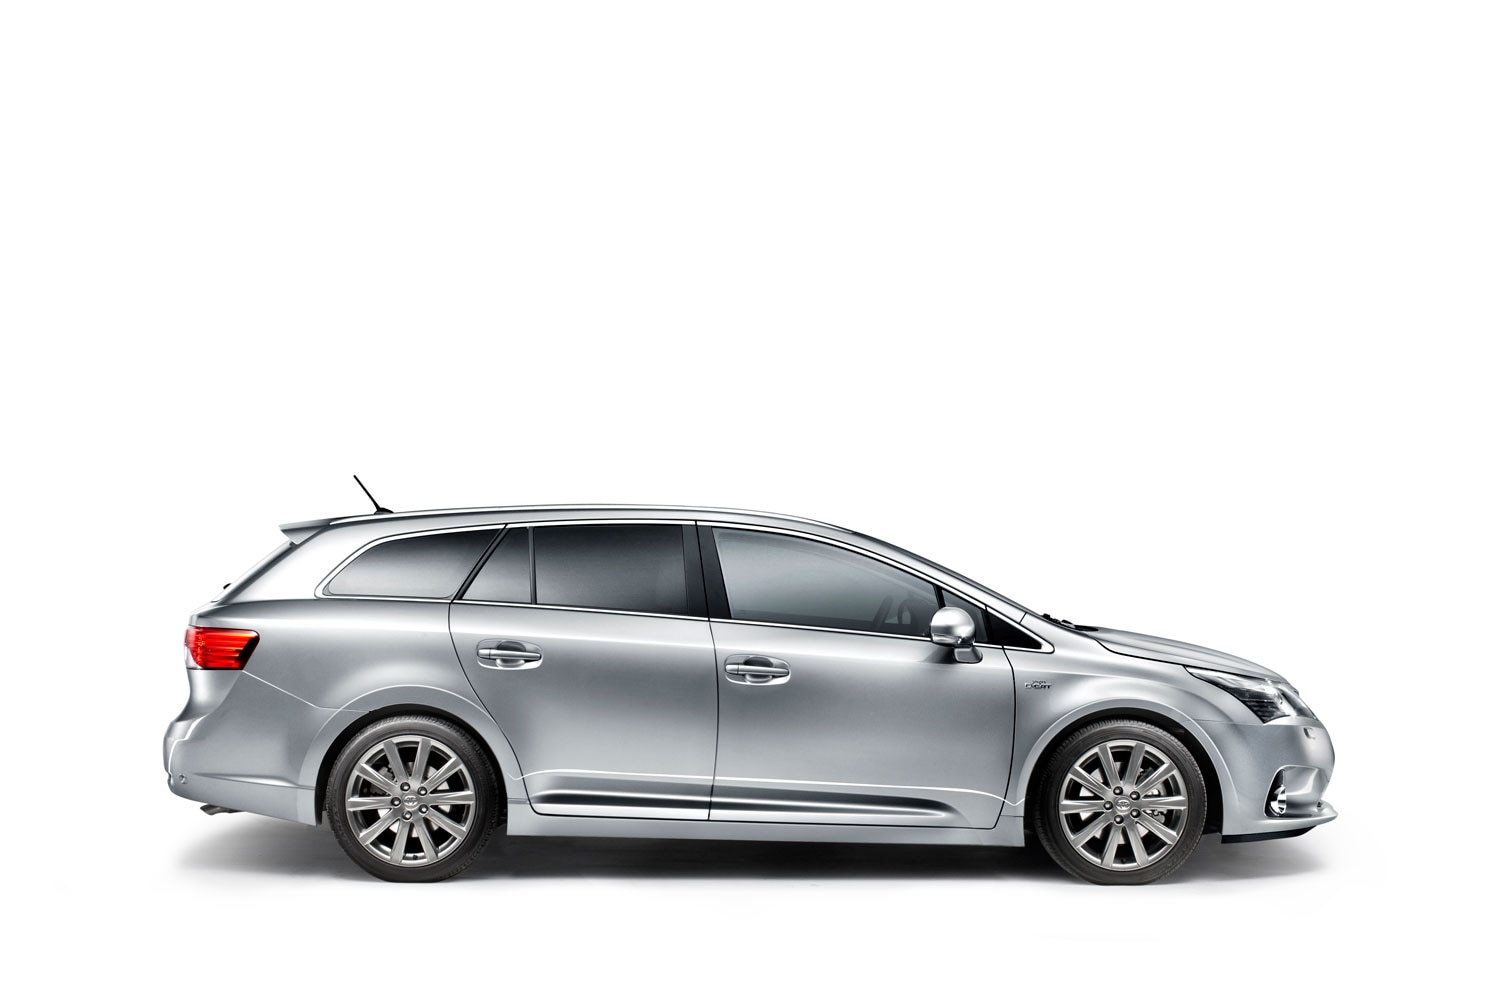 2012 Toyota Avensis Side1